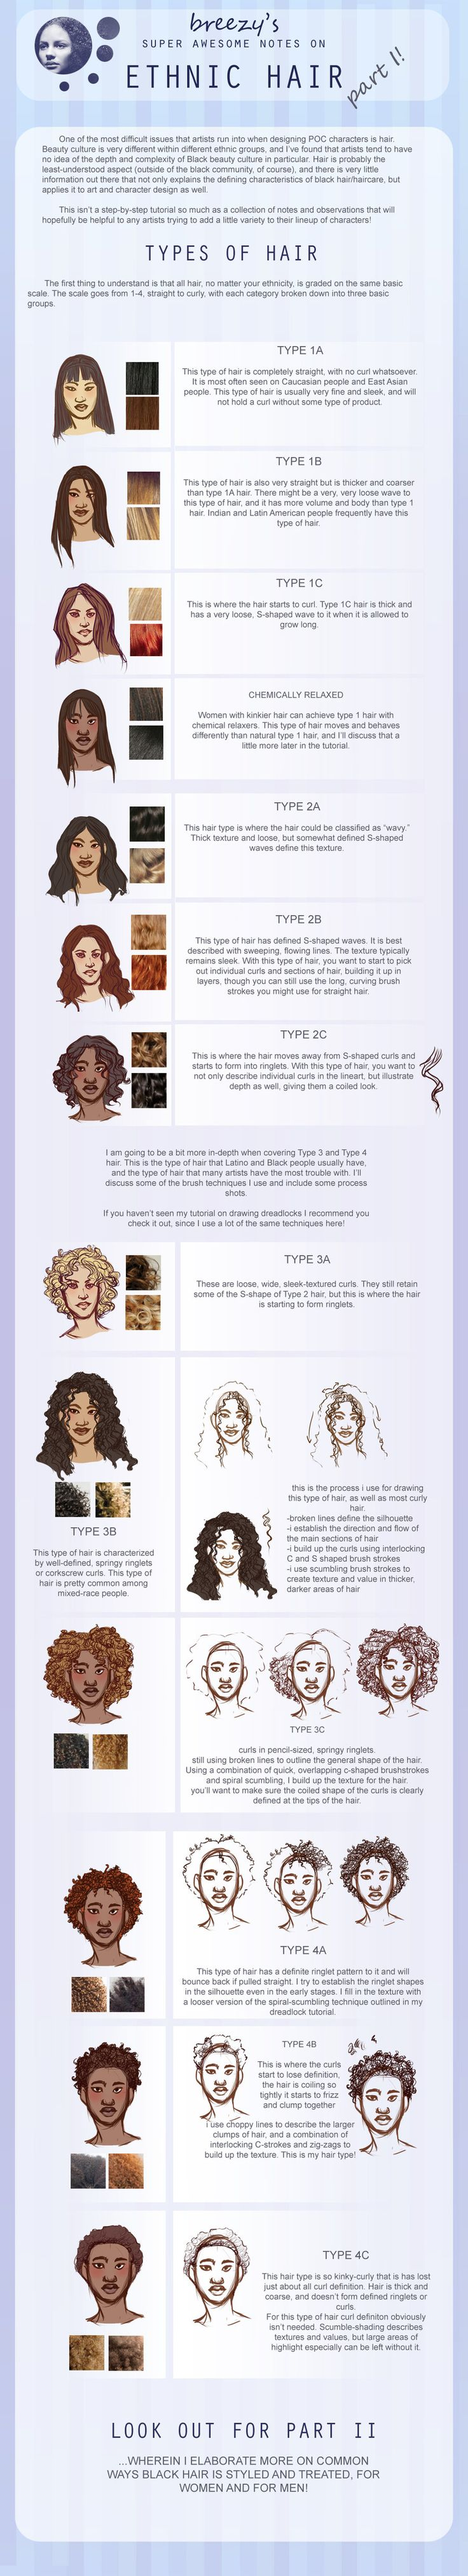 VERY WELL BROKEN DOWN EXPLANATION OF ETHNIC HAIR TYPES